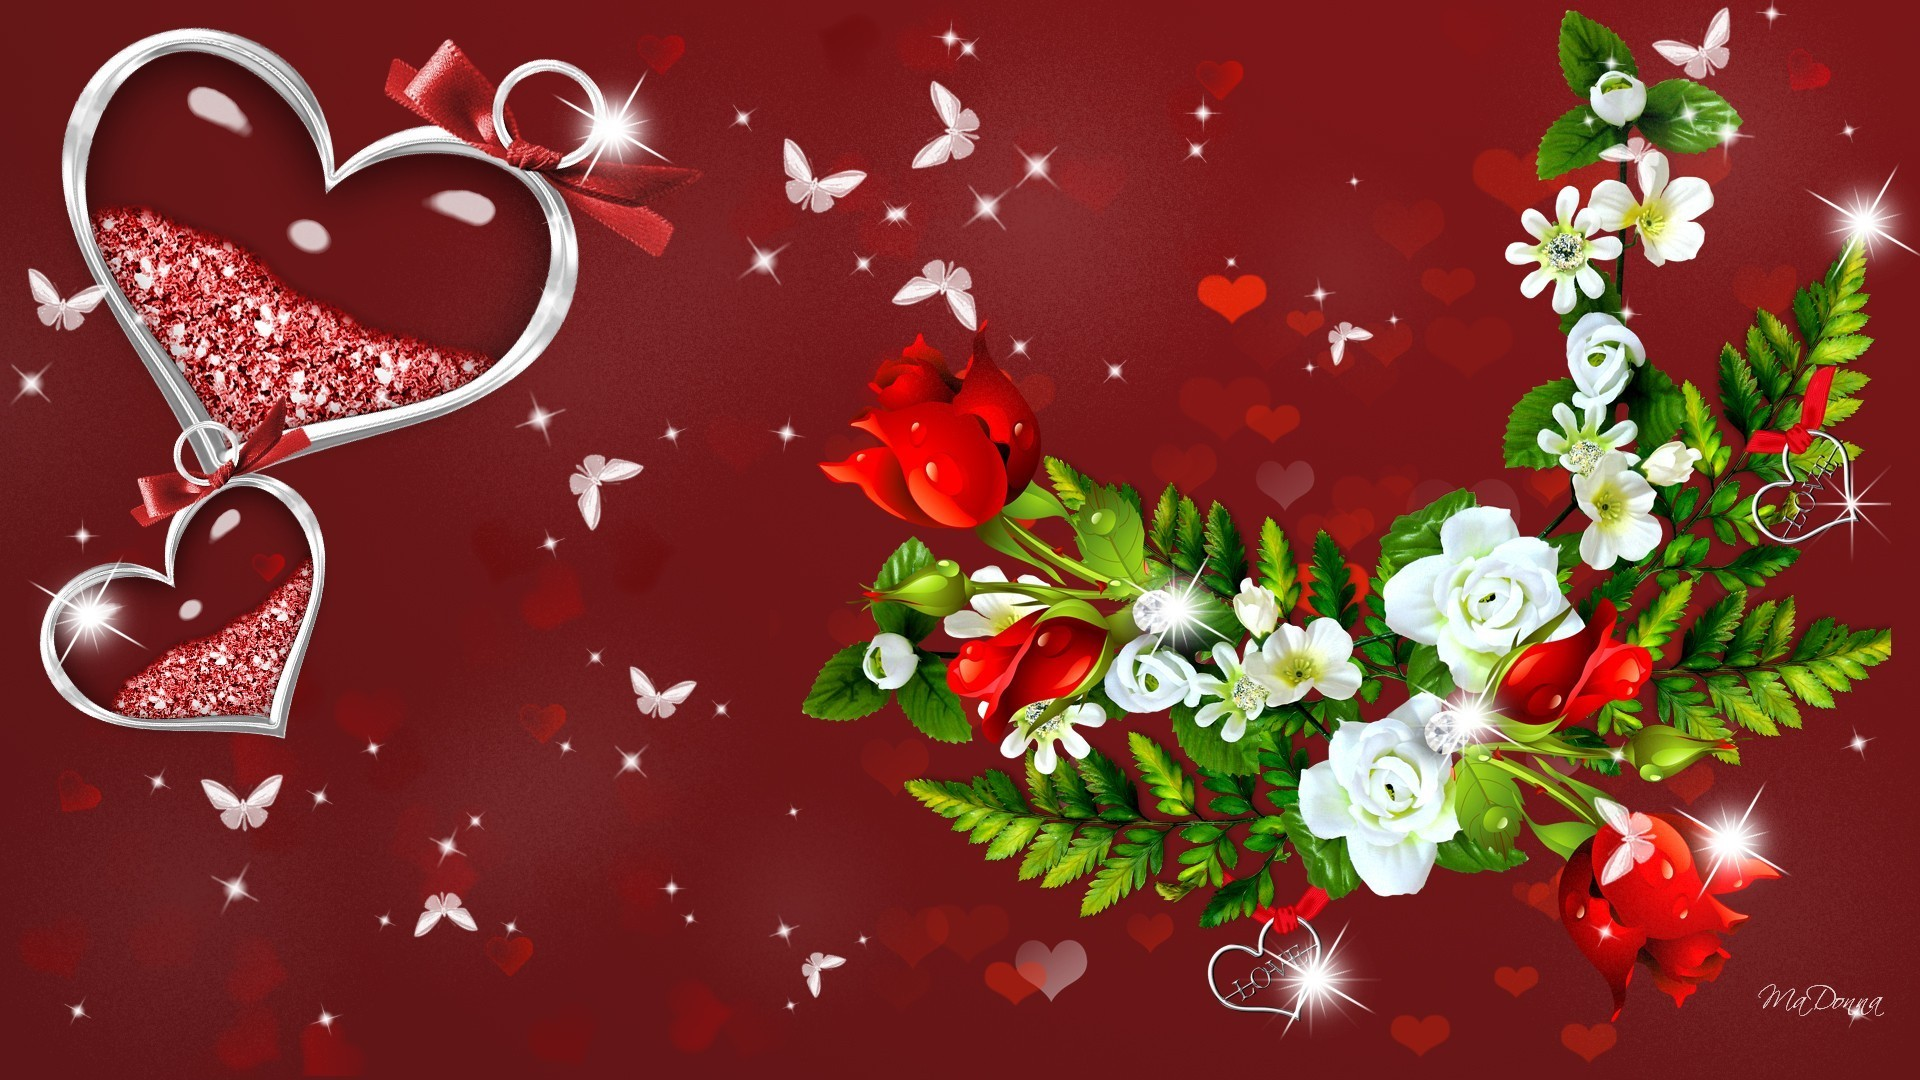 Stars and hearts wallpaper 35 images - Valentine s day flower wallpaper ...